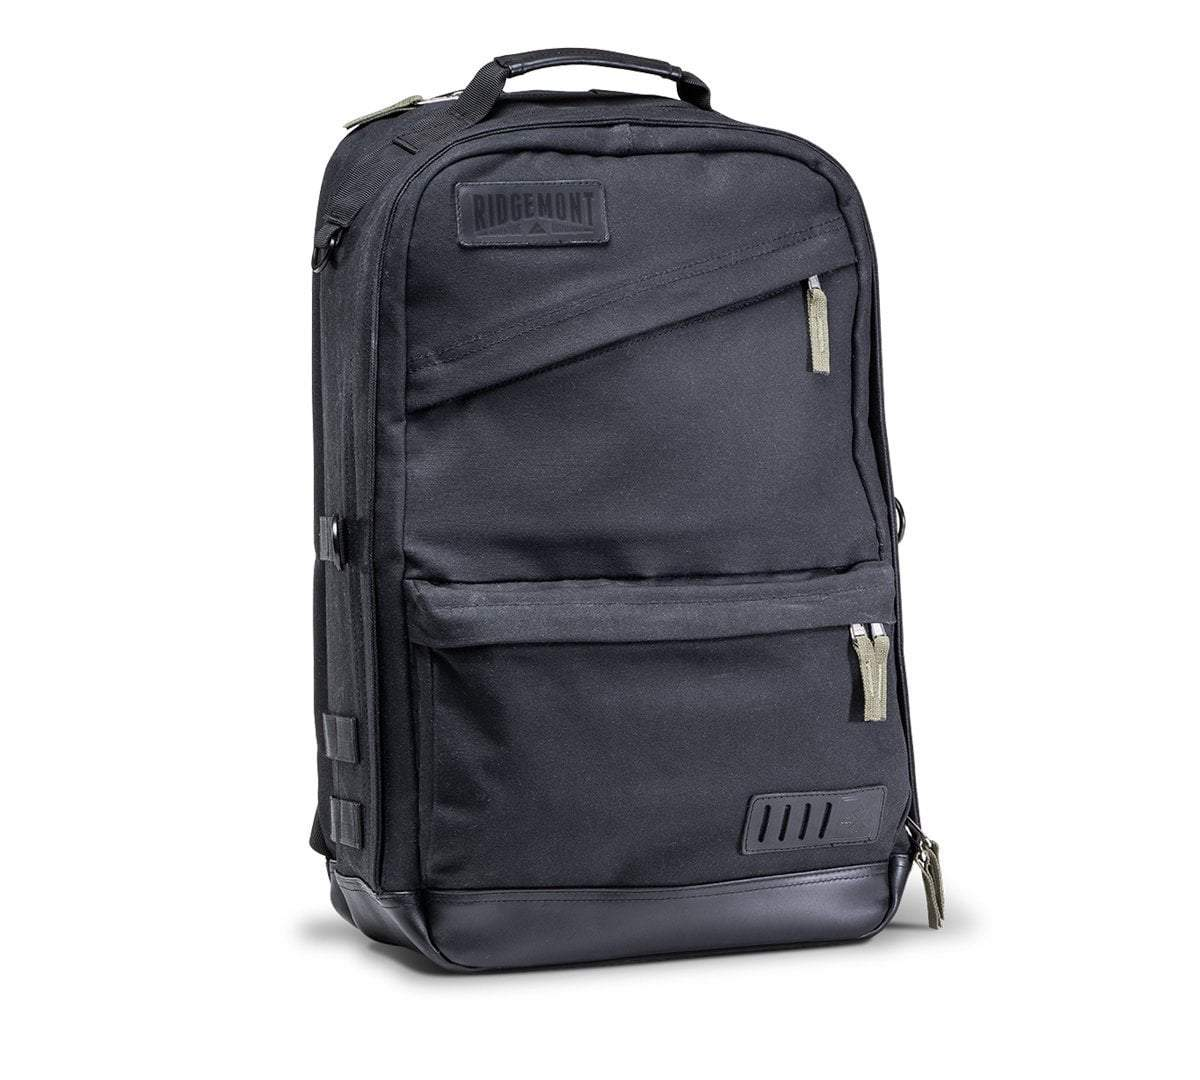 Ranger Backpack - Black/Green - Ridgemont